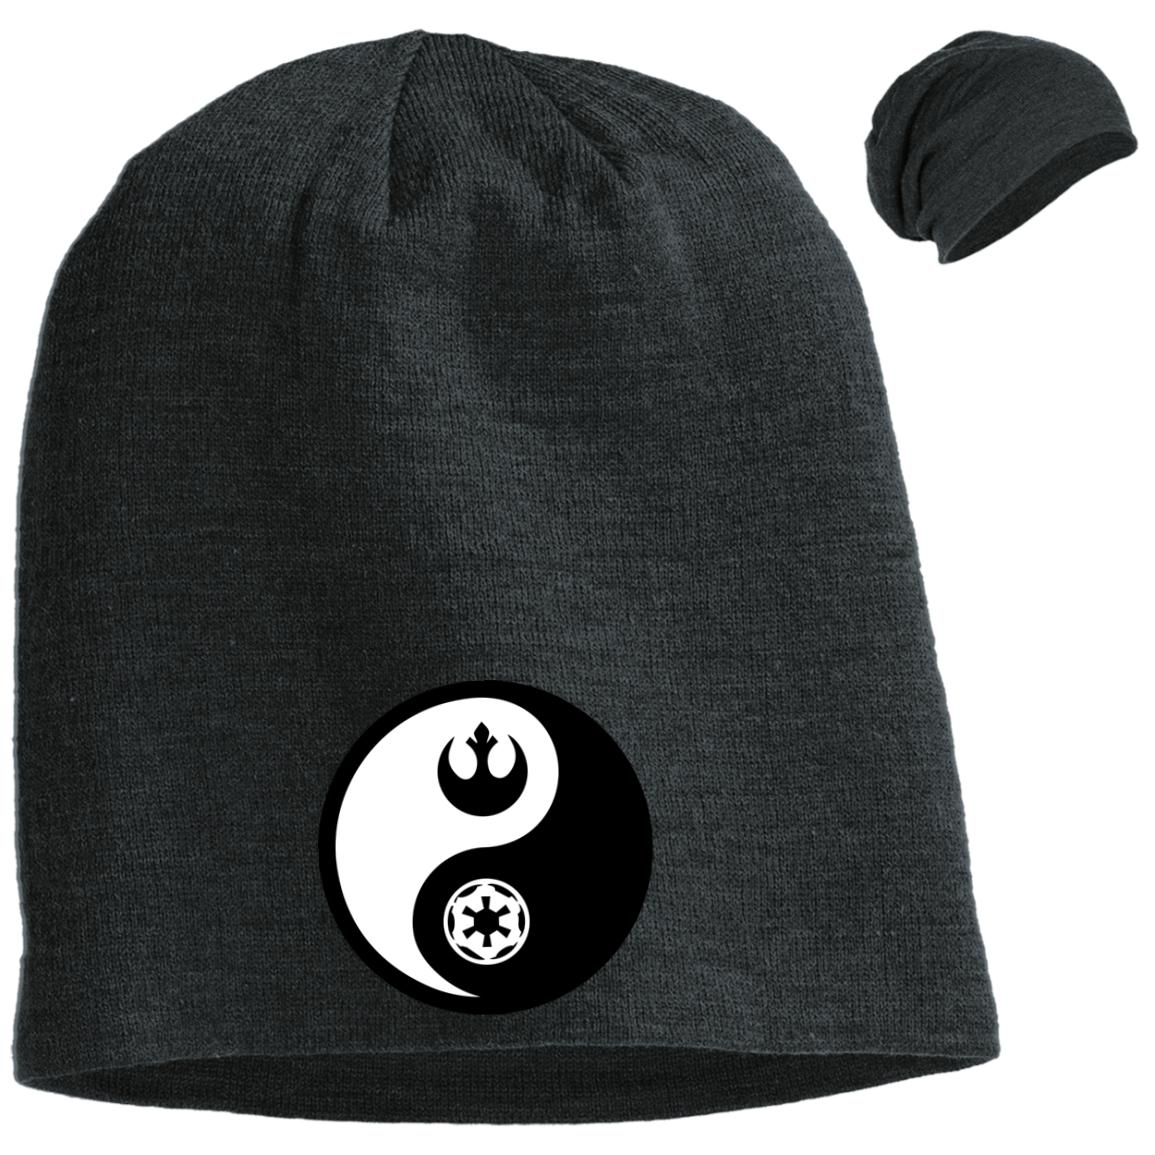 Rebel & Empire Yin Yang - Embroidered Slouch Beanie